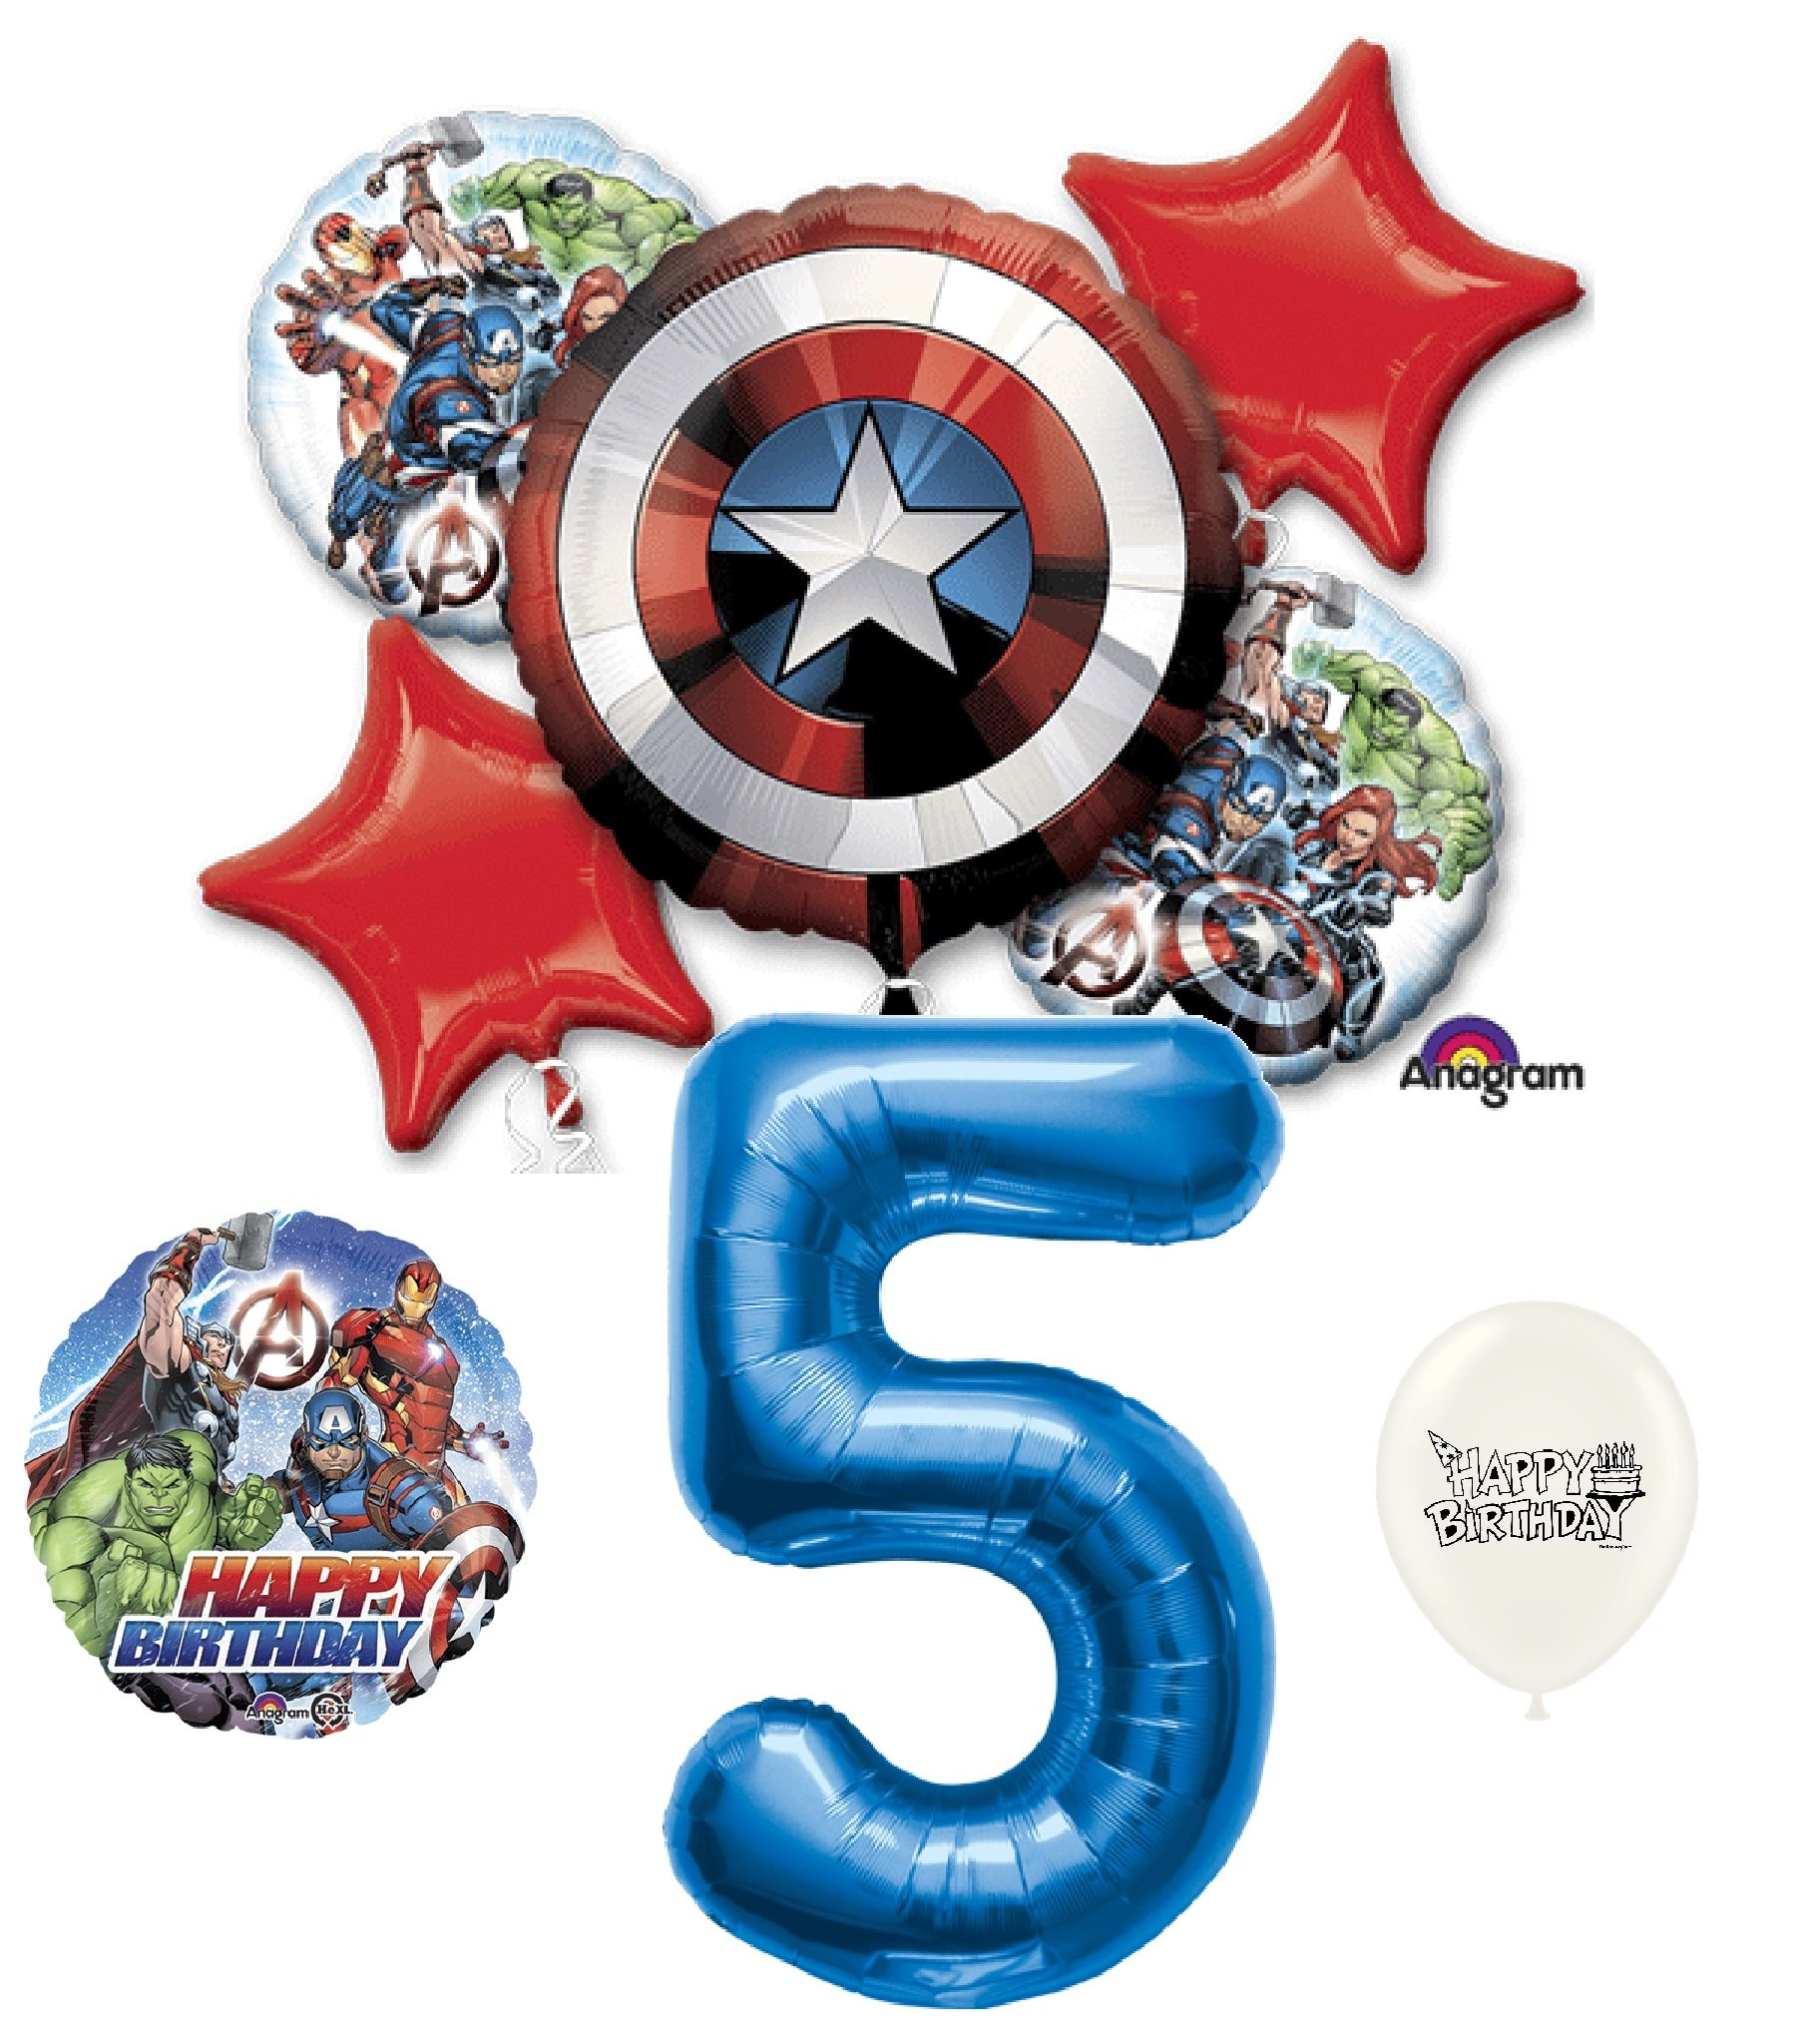 5th Birthday Blue Number Avengers Captain America Shield Balloons Bouquet Bundle